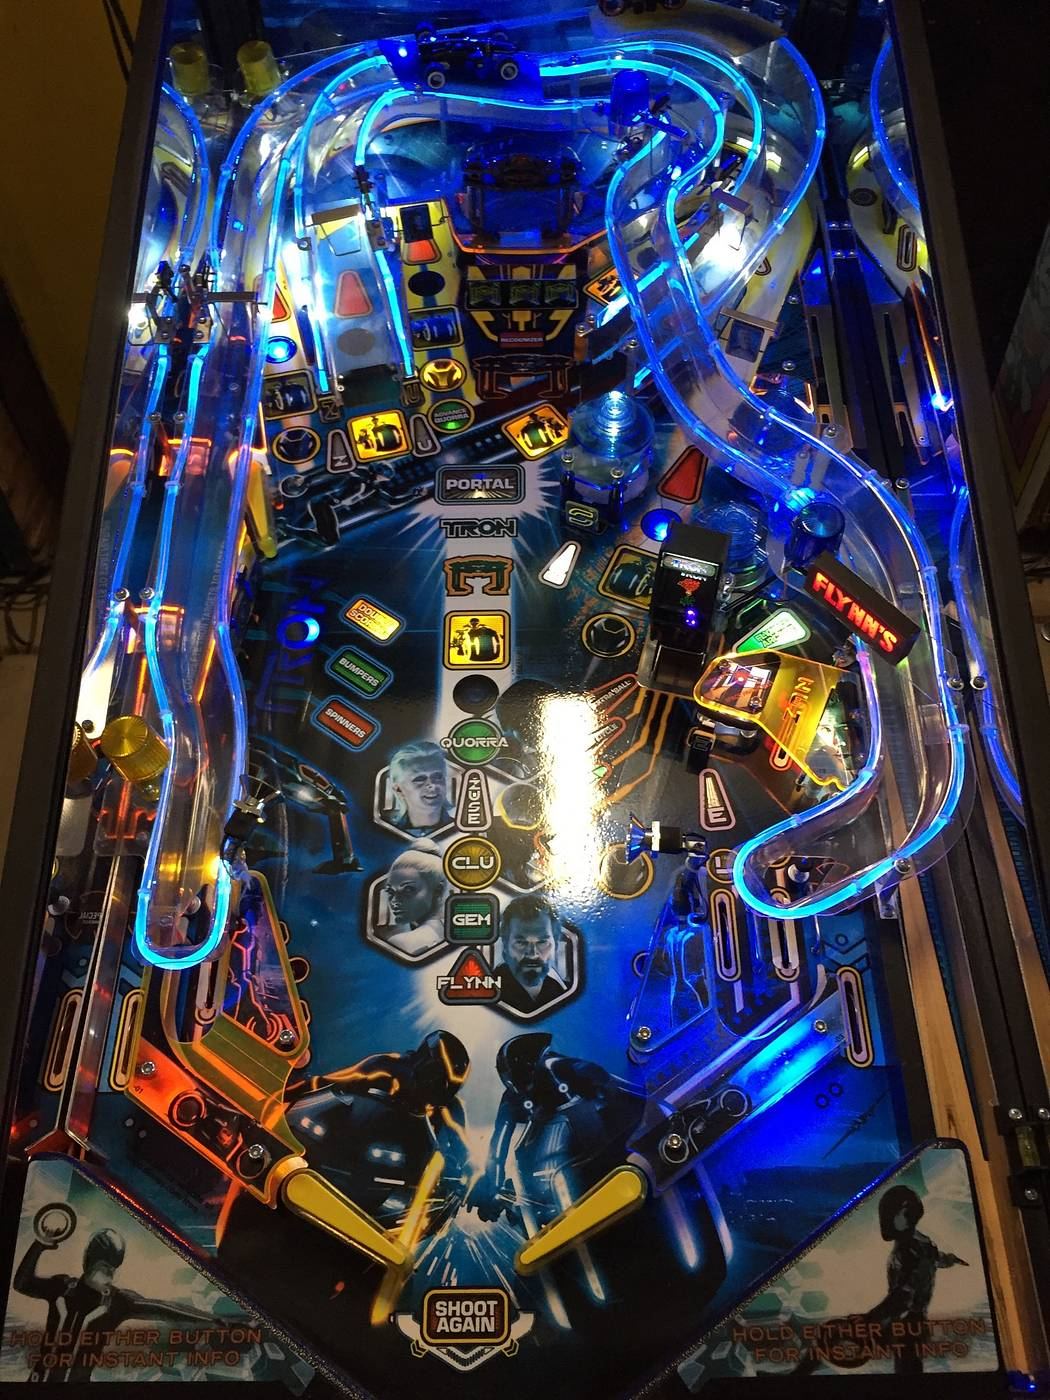 For Sale Tron Pro Pinball Machines For Sale Pinside Com